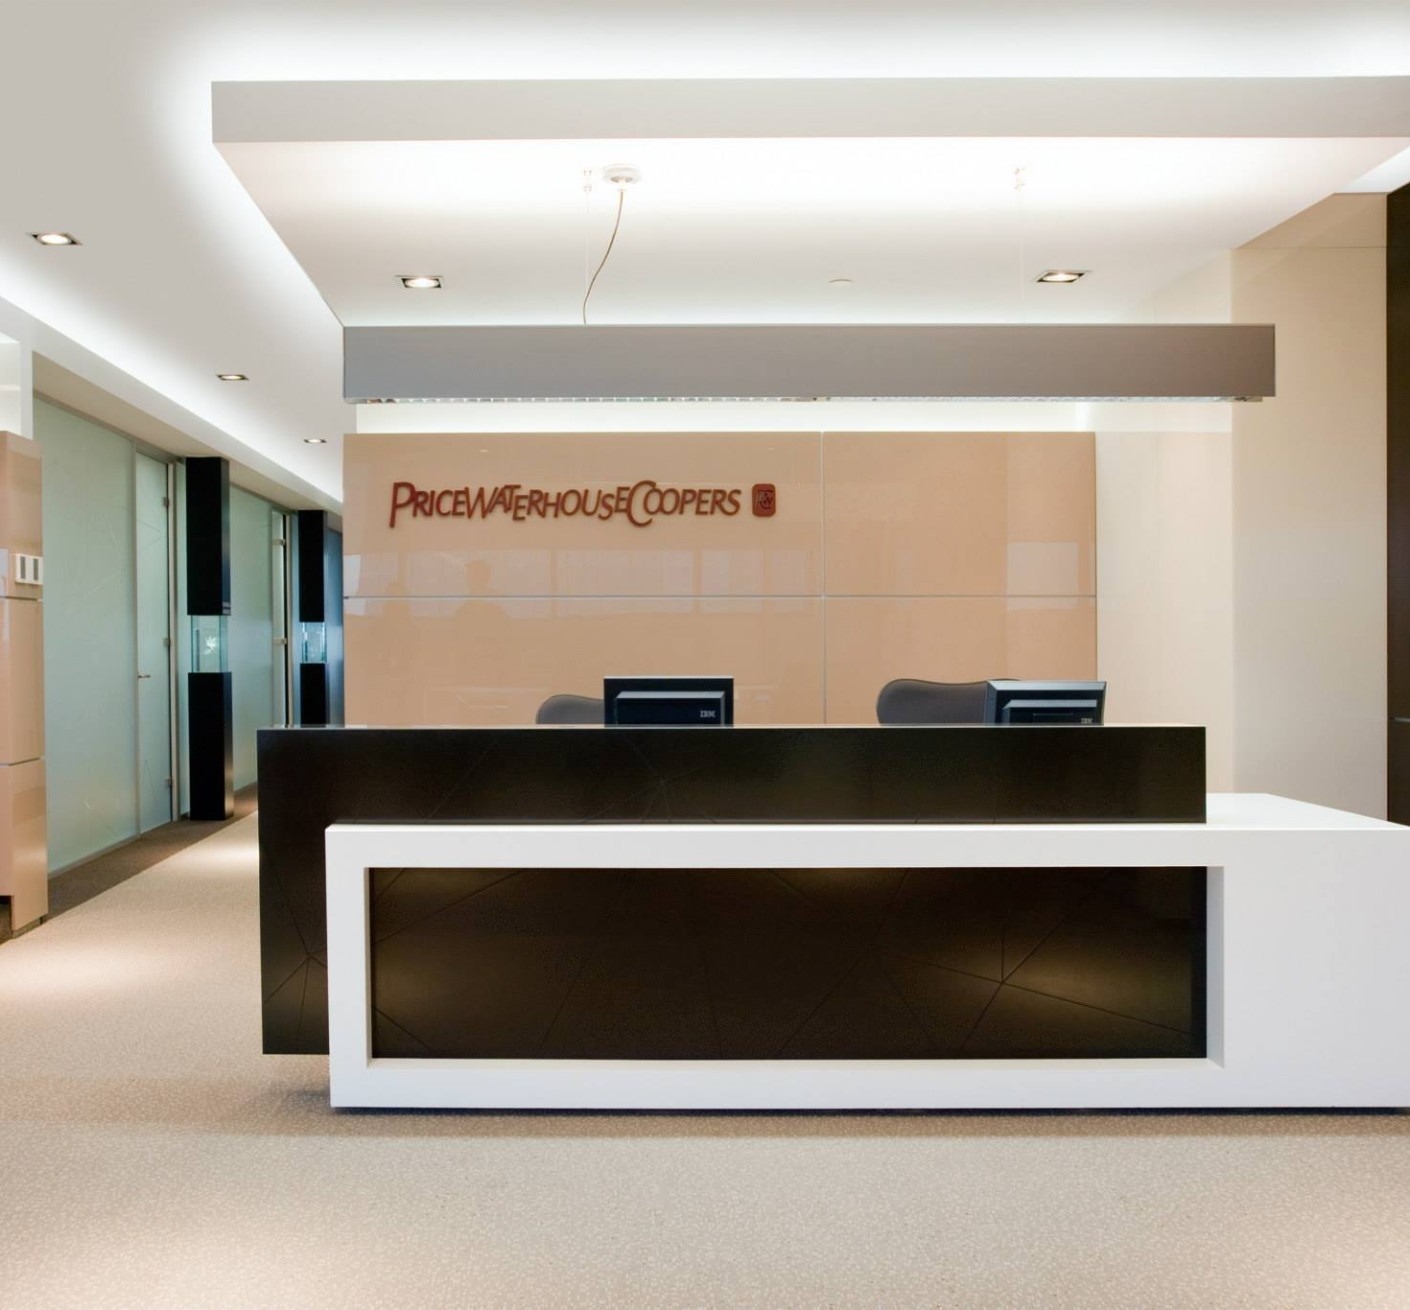 PricewaterhouseCoopers_HCD_AMA_design_01